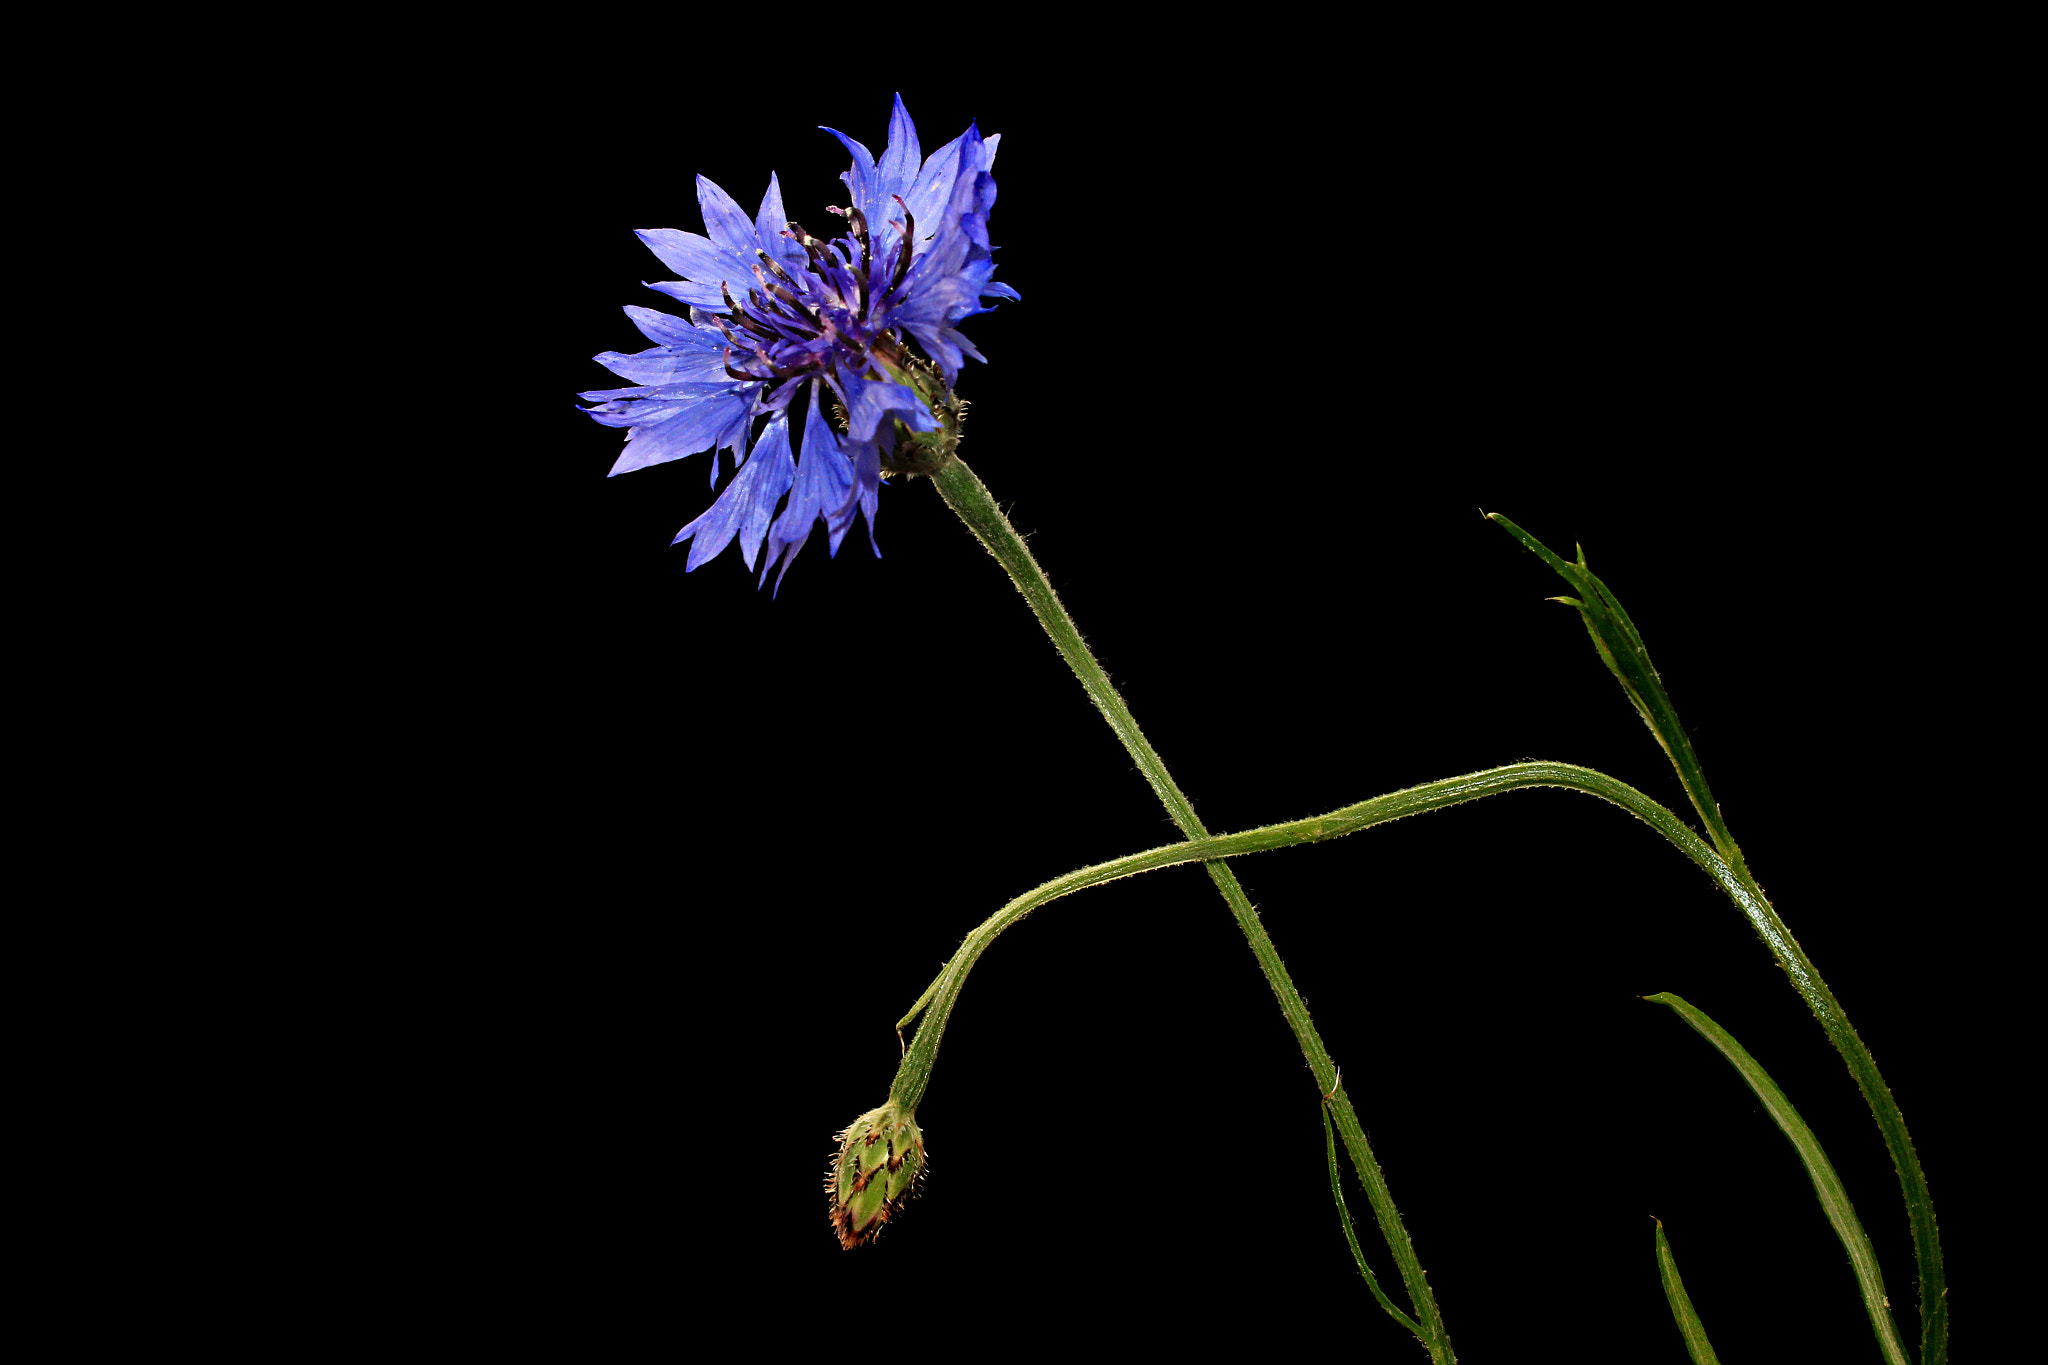 Photograph Cornflower by Vendenis   on 500px